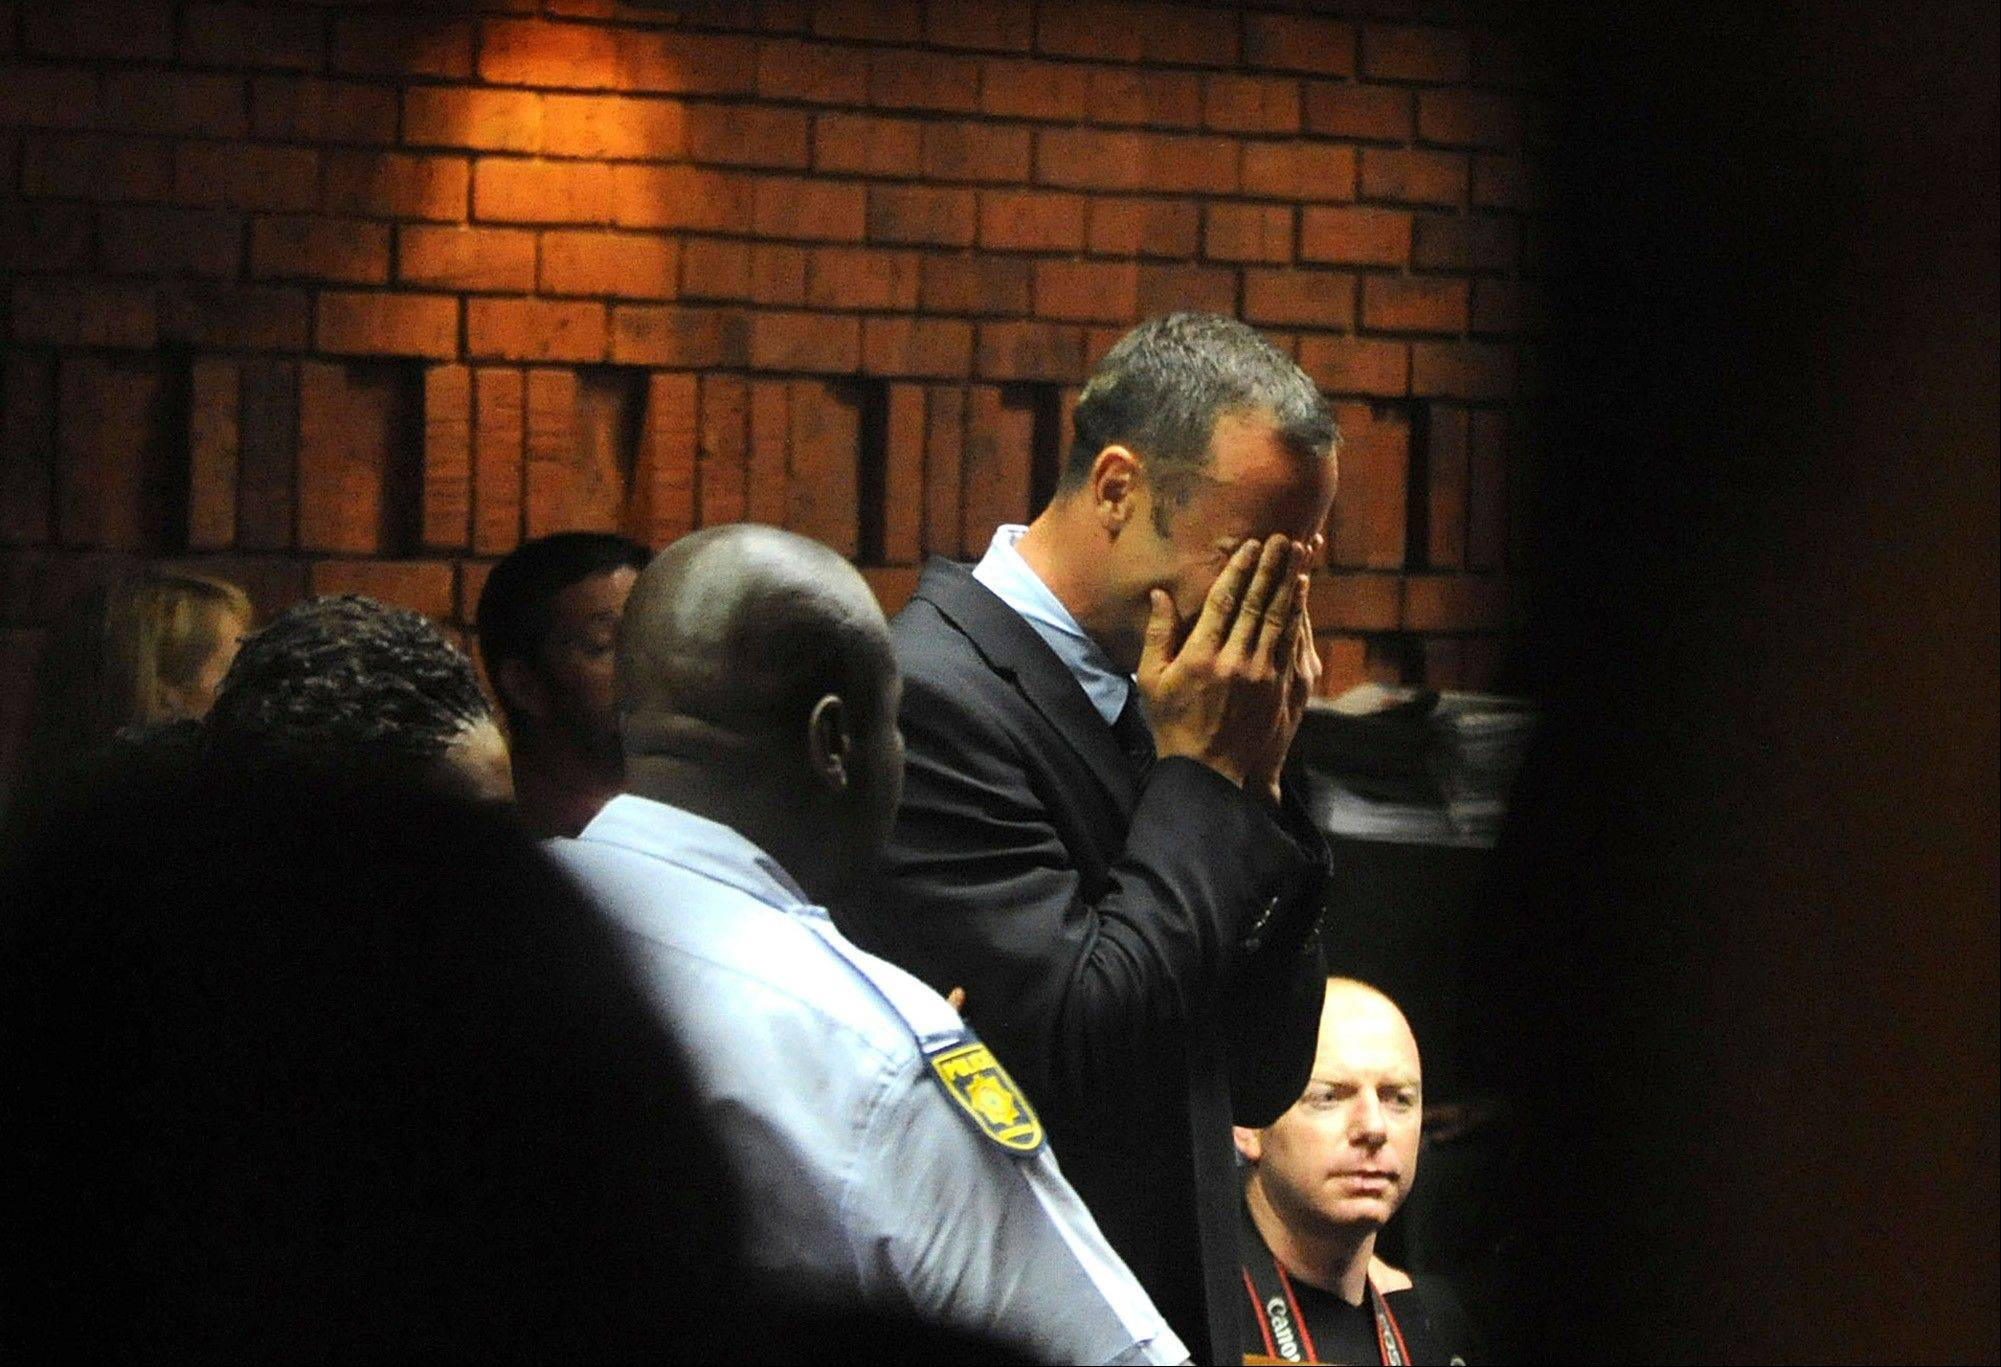 Athlete Oscar Pistorius weeps Friday in court in Pretoria, South Africa, at his bail hearing in the murder case of his girlfriend Reeva Steenkamp.